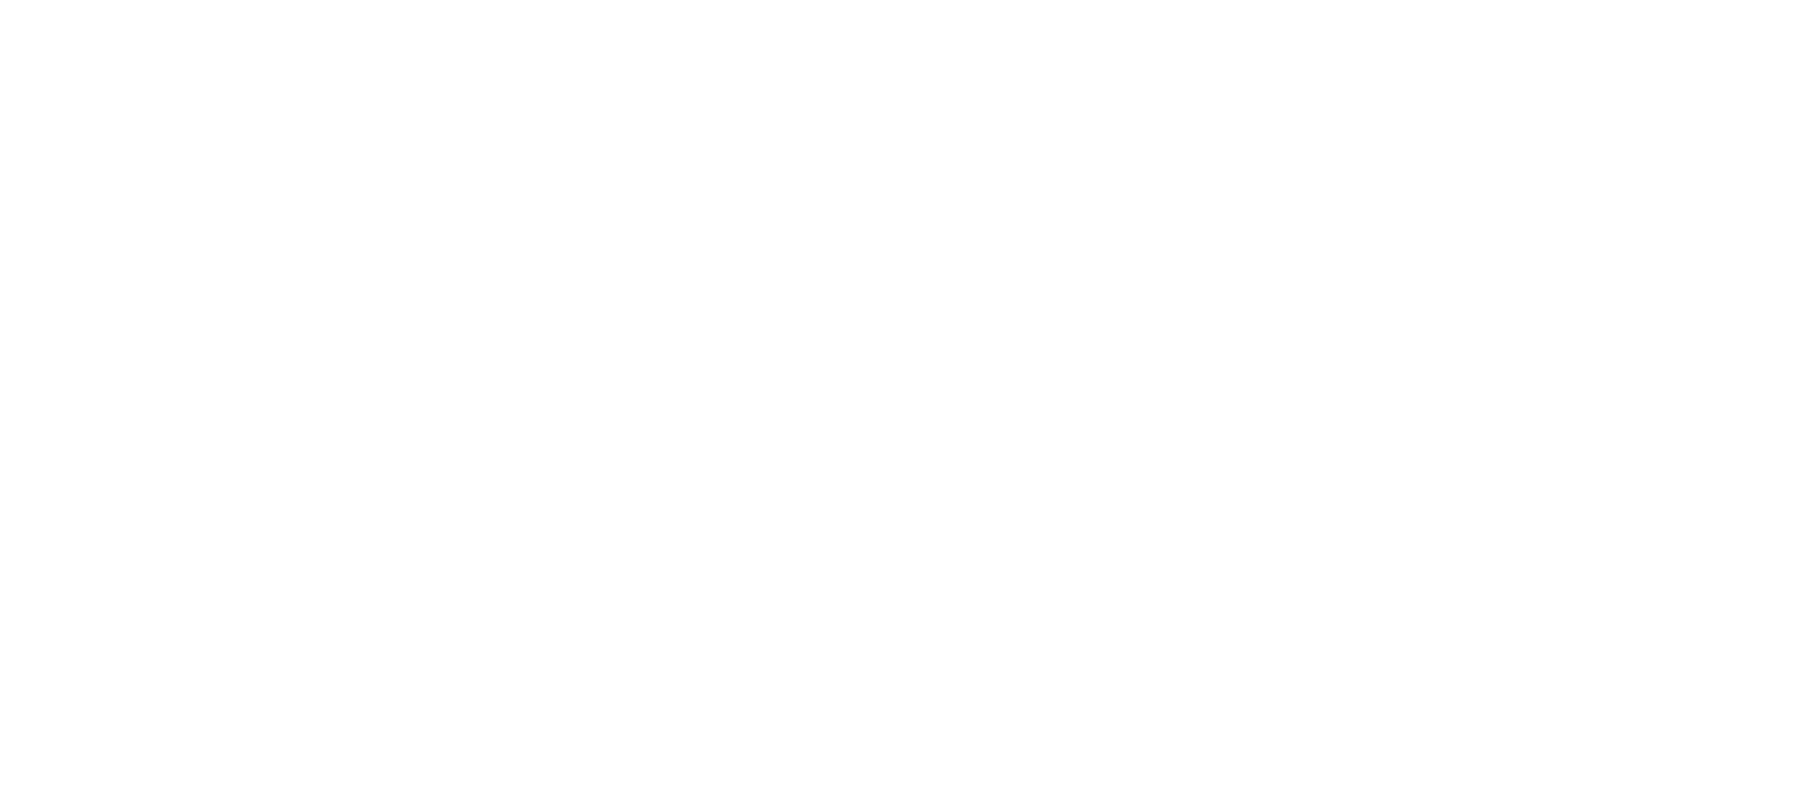 Master Builders Gold Coast 2017 Winner